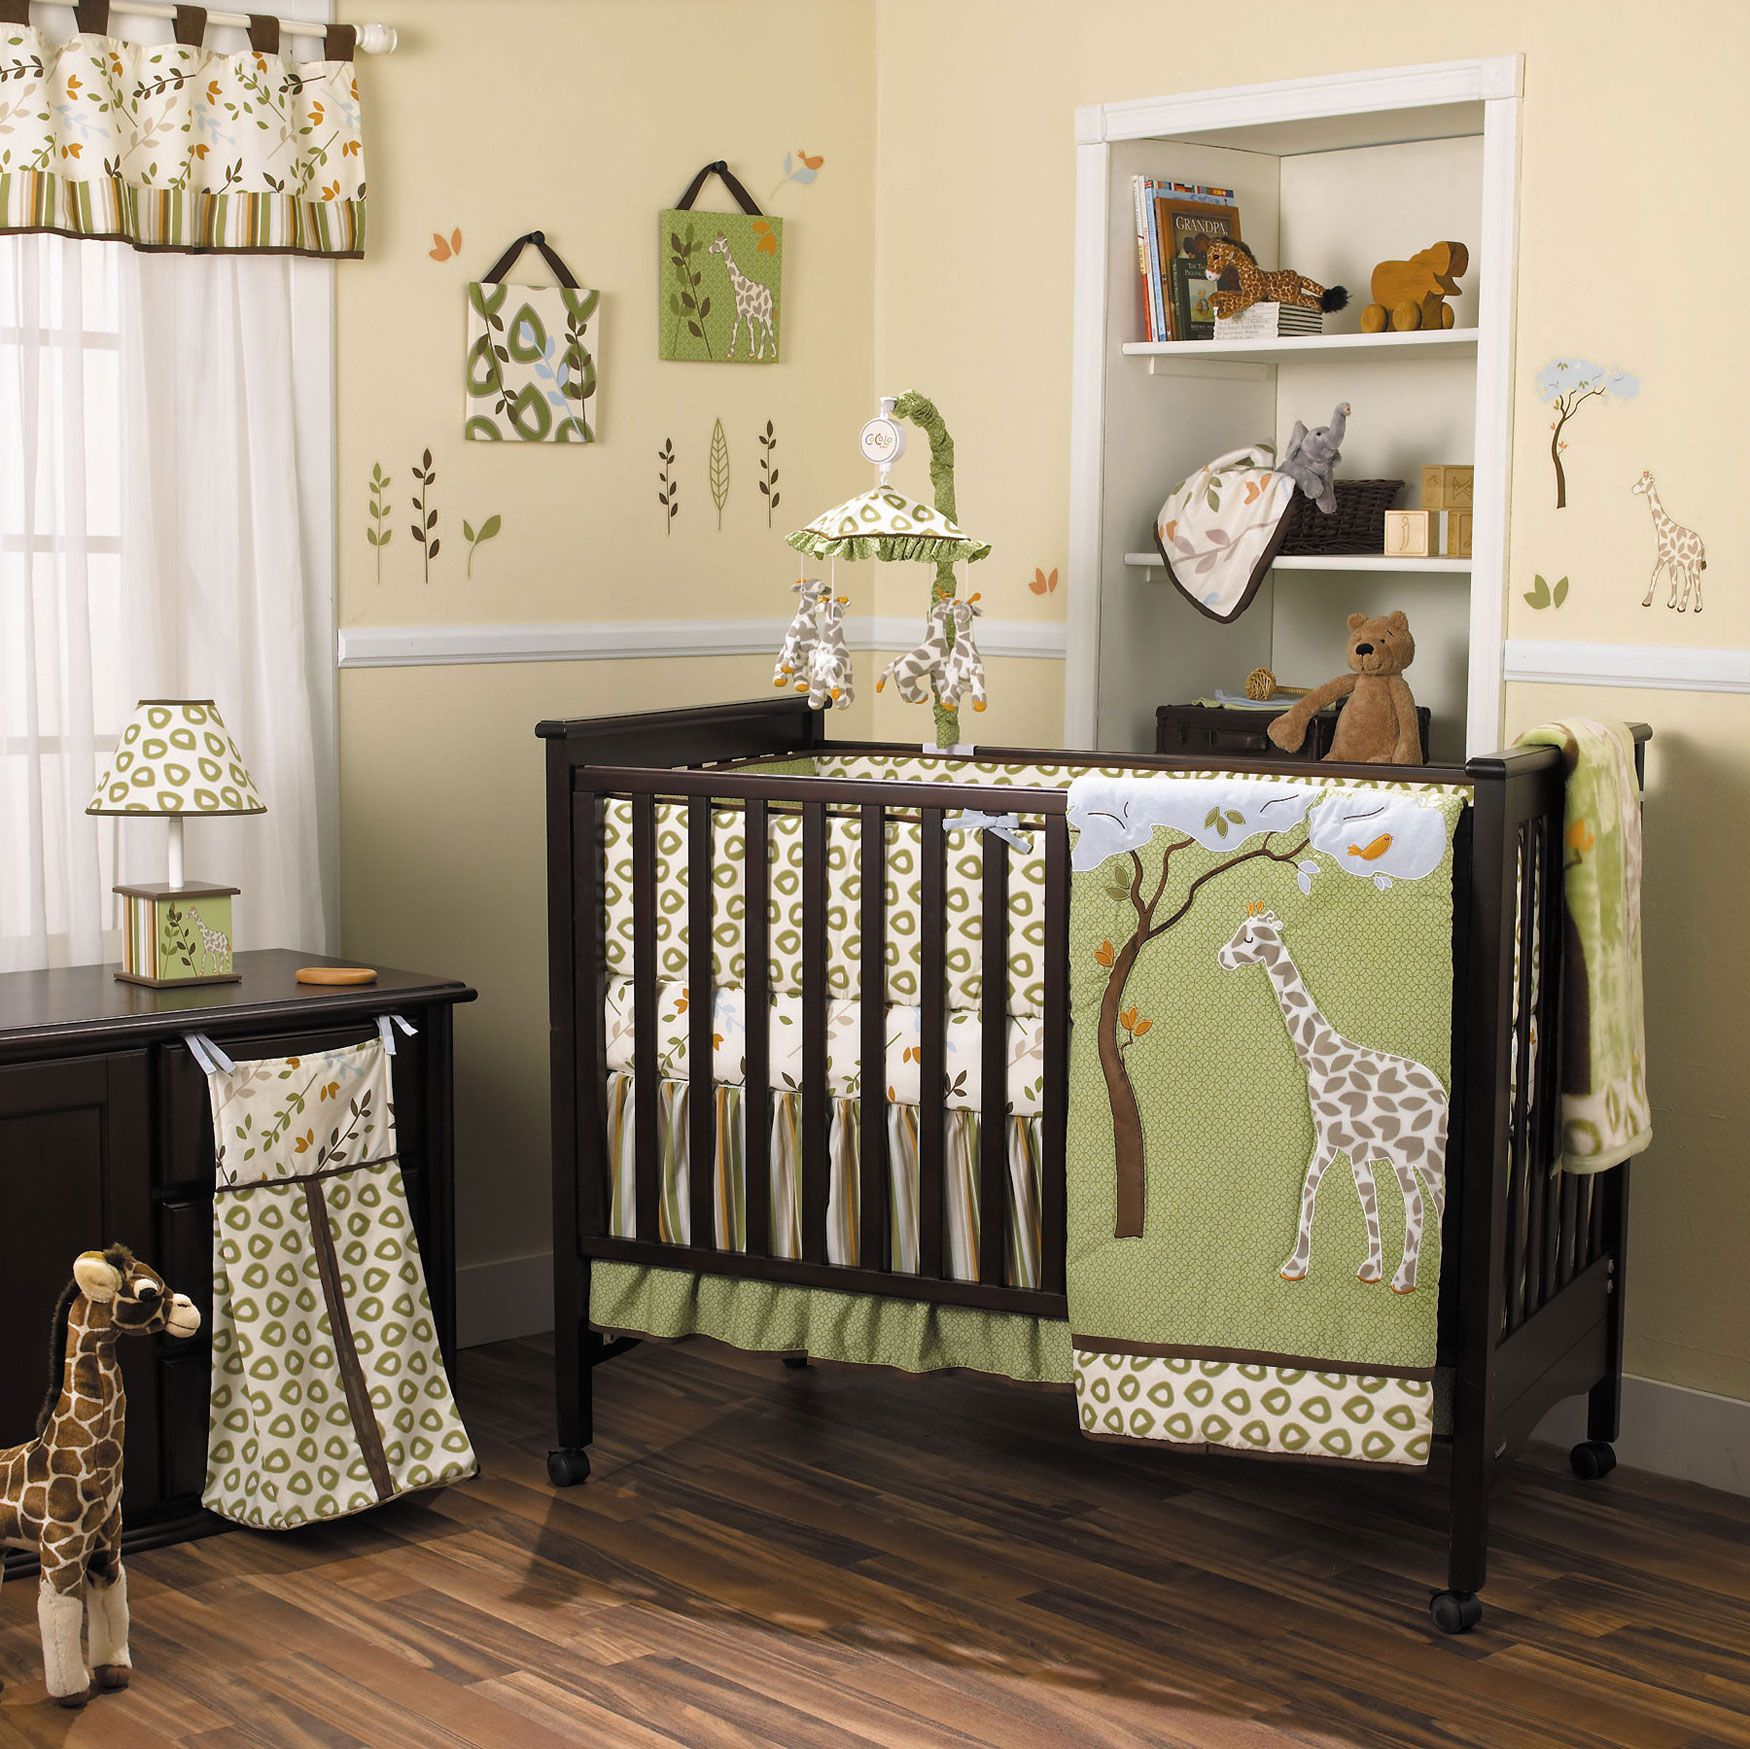 hunter create bedding woodland fs by lodge country itm beige cribs rustic boy sweet jojo baby little woodlandcamo green camo collection patchwork a the set this for look deer crib your cream large will skirt designs